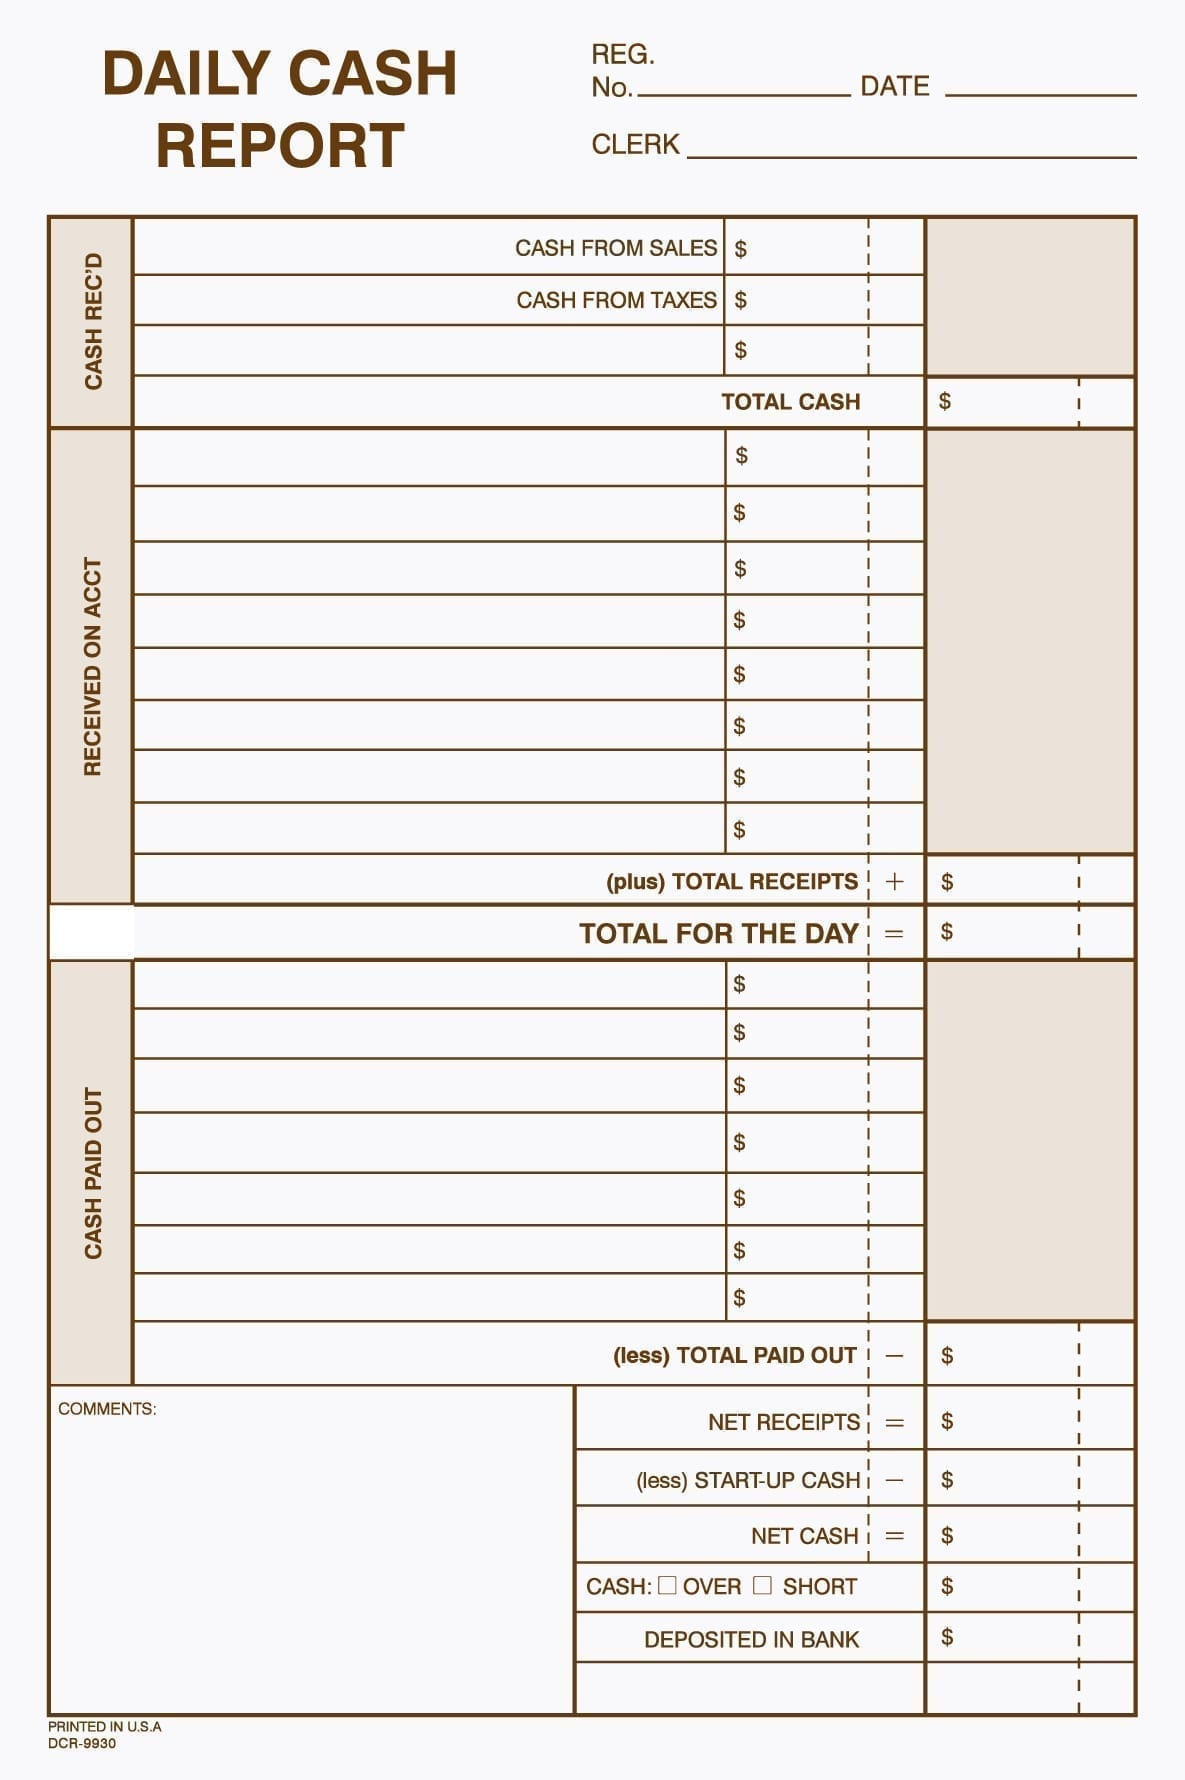 Daily Cash Report Envelope Free Shipping